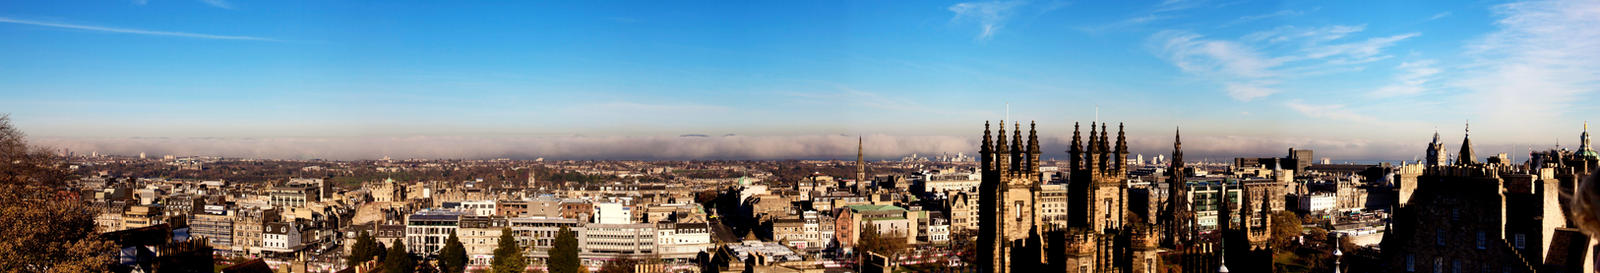 Edinburgh From the rooftops by mcdee2005